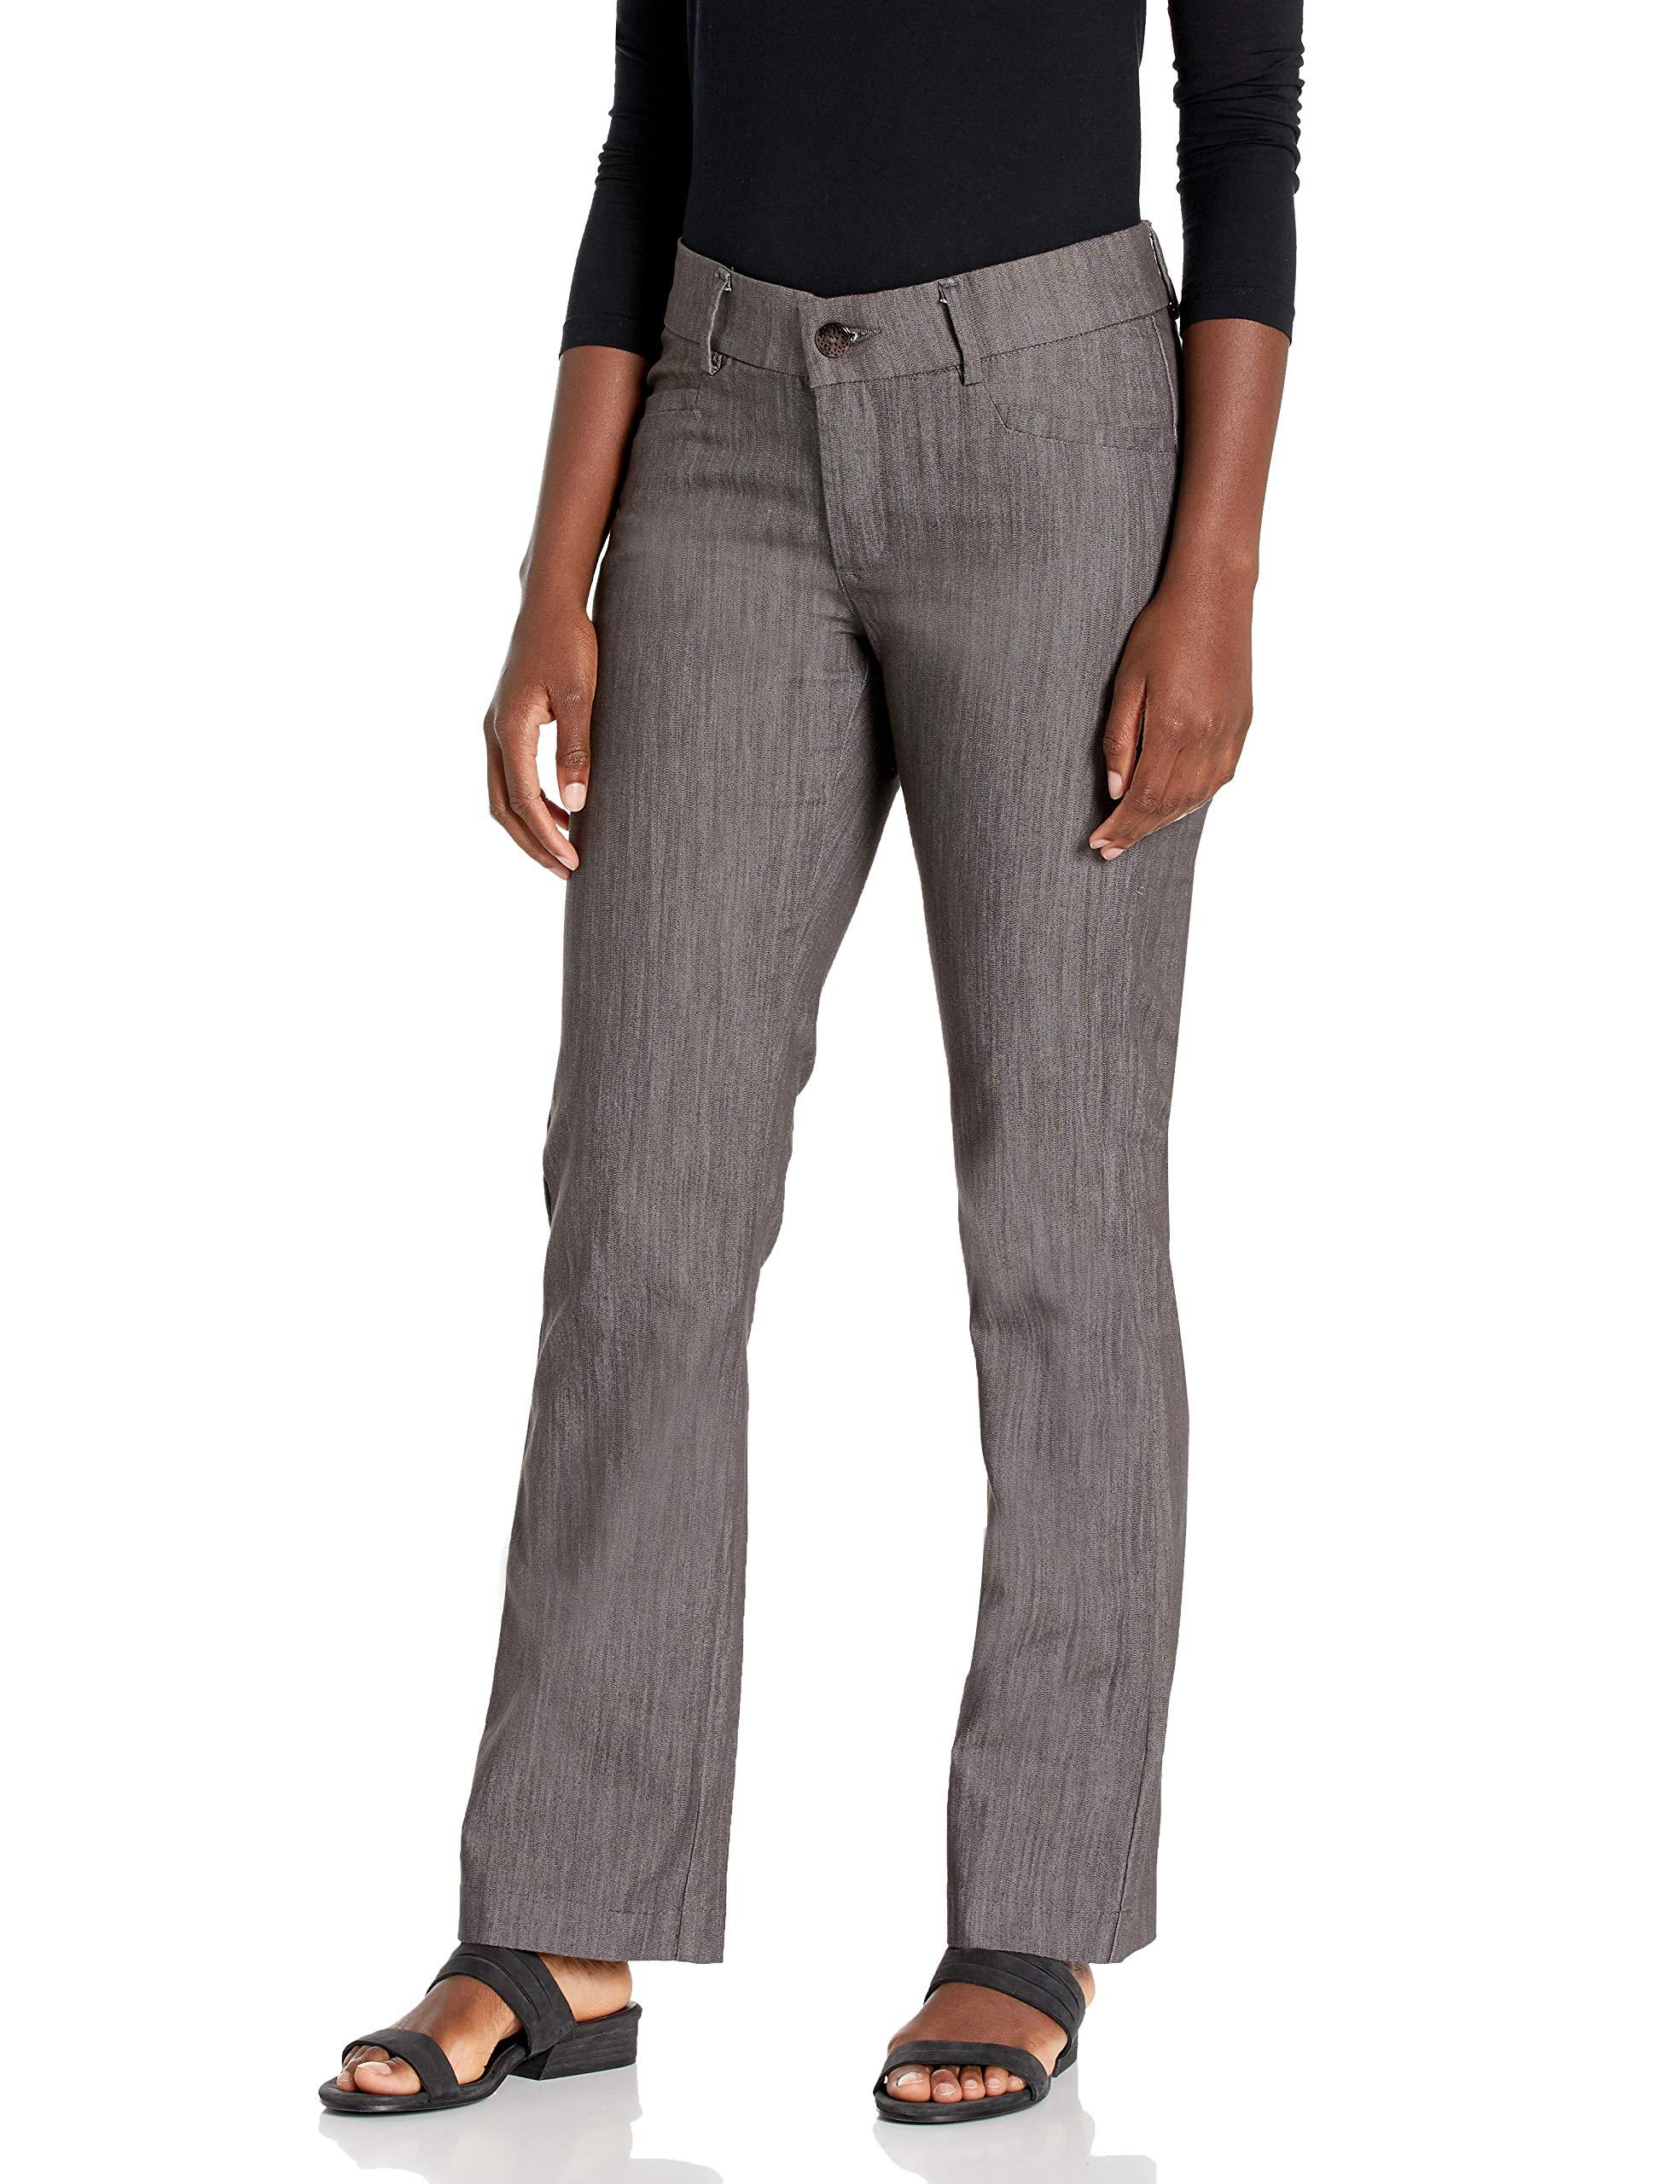 Lee Women's New Midrise No Gap Madelyn Trouser